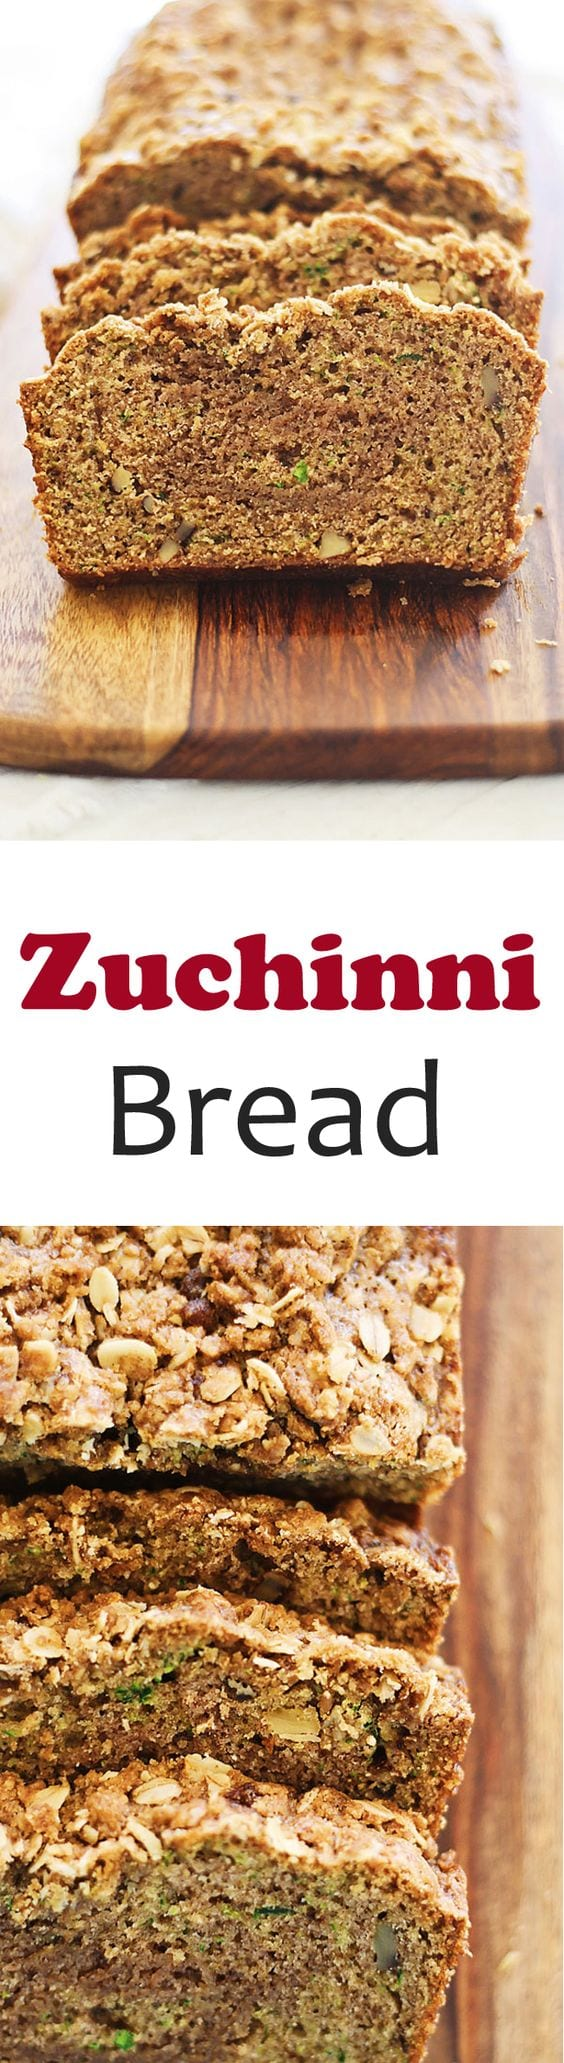 Zucchini Bread – easy, moist, and the BEST zucchini bread loaded with walnuts and crumb topping of cinnamon and butter. Quick and fool proof recipe! | rasamalaysia.com